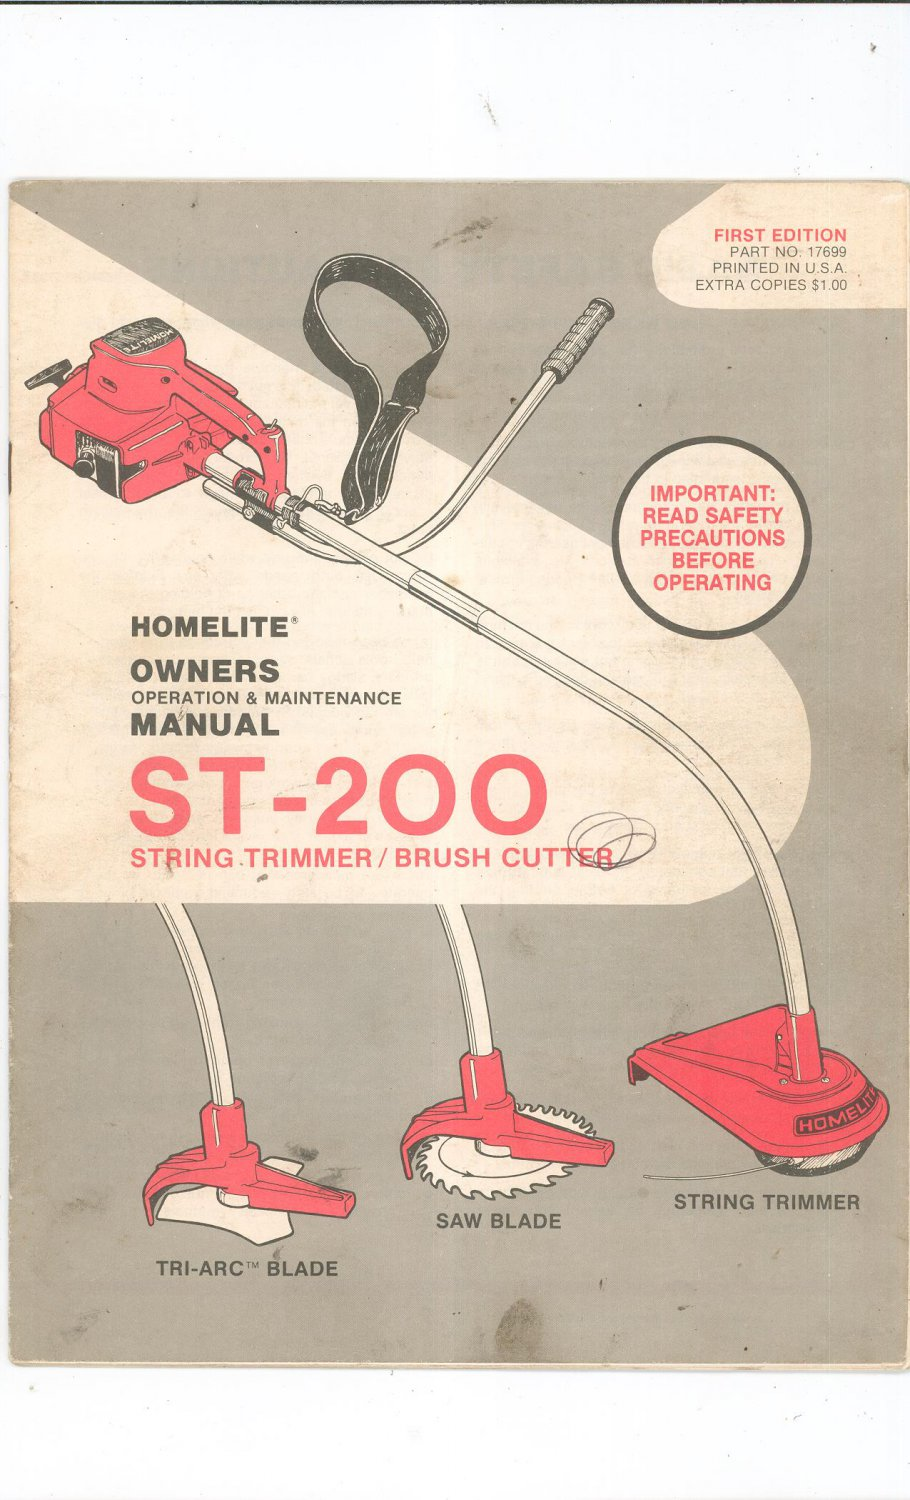 homelite string trimmer brush cutter owners manual st 200 not pdf